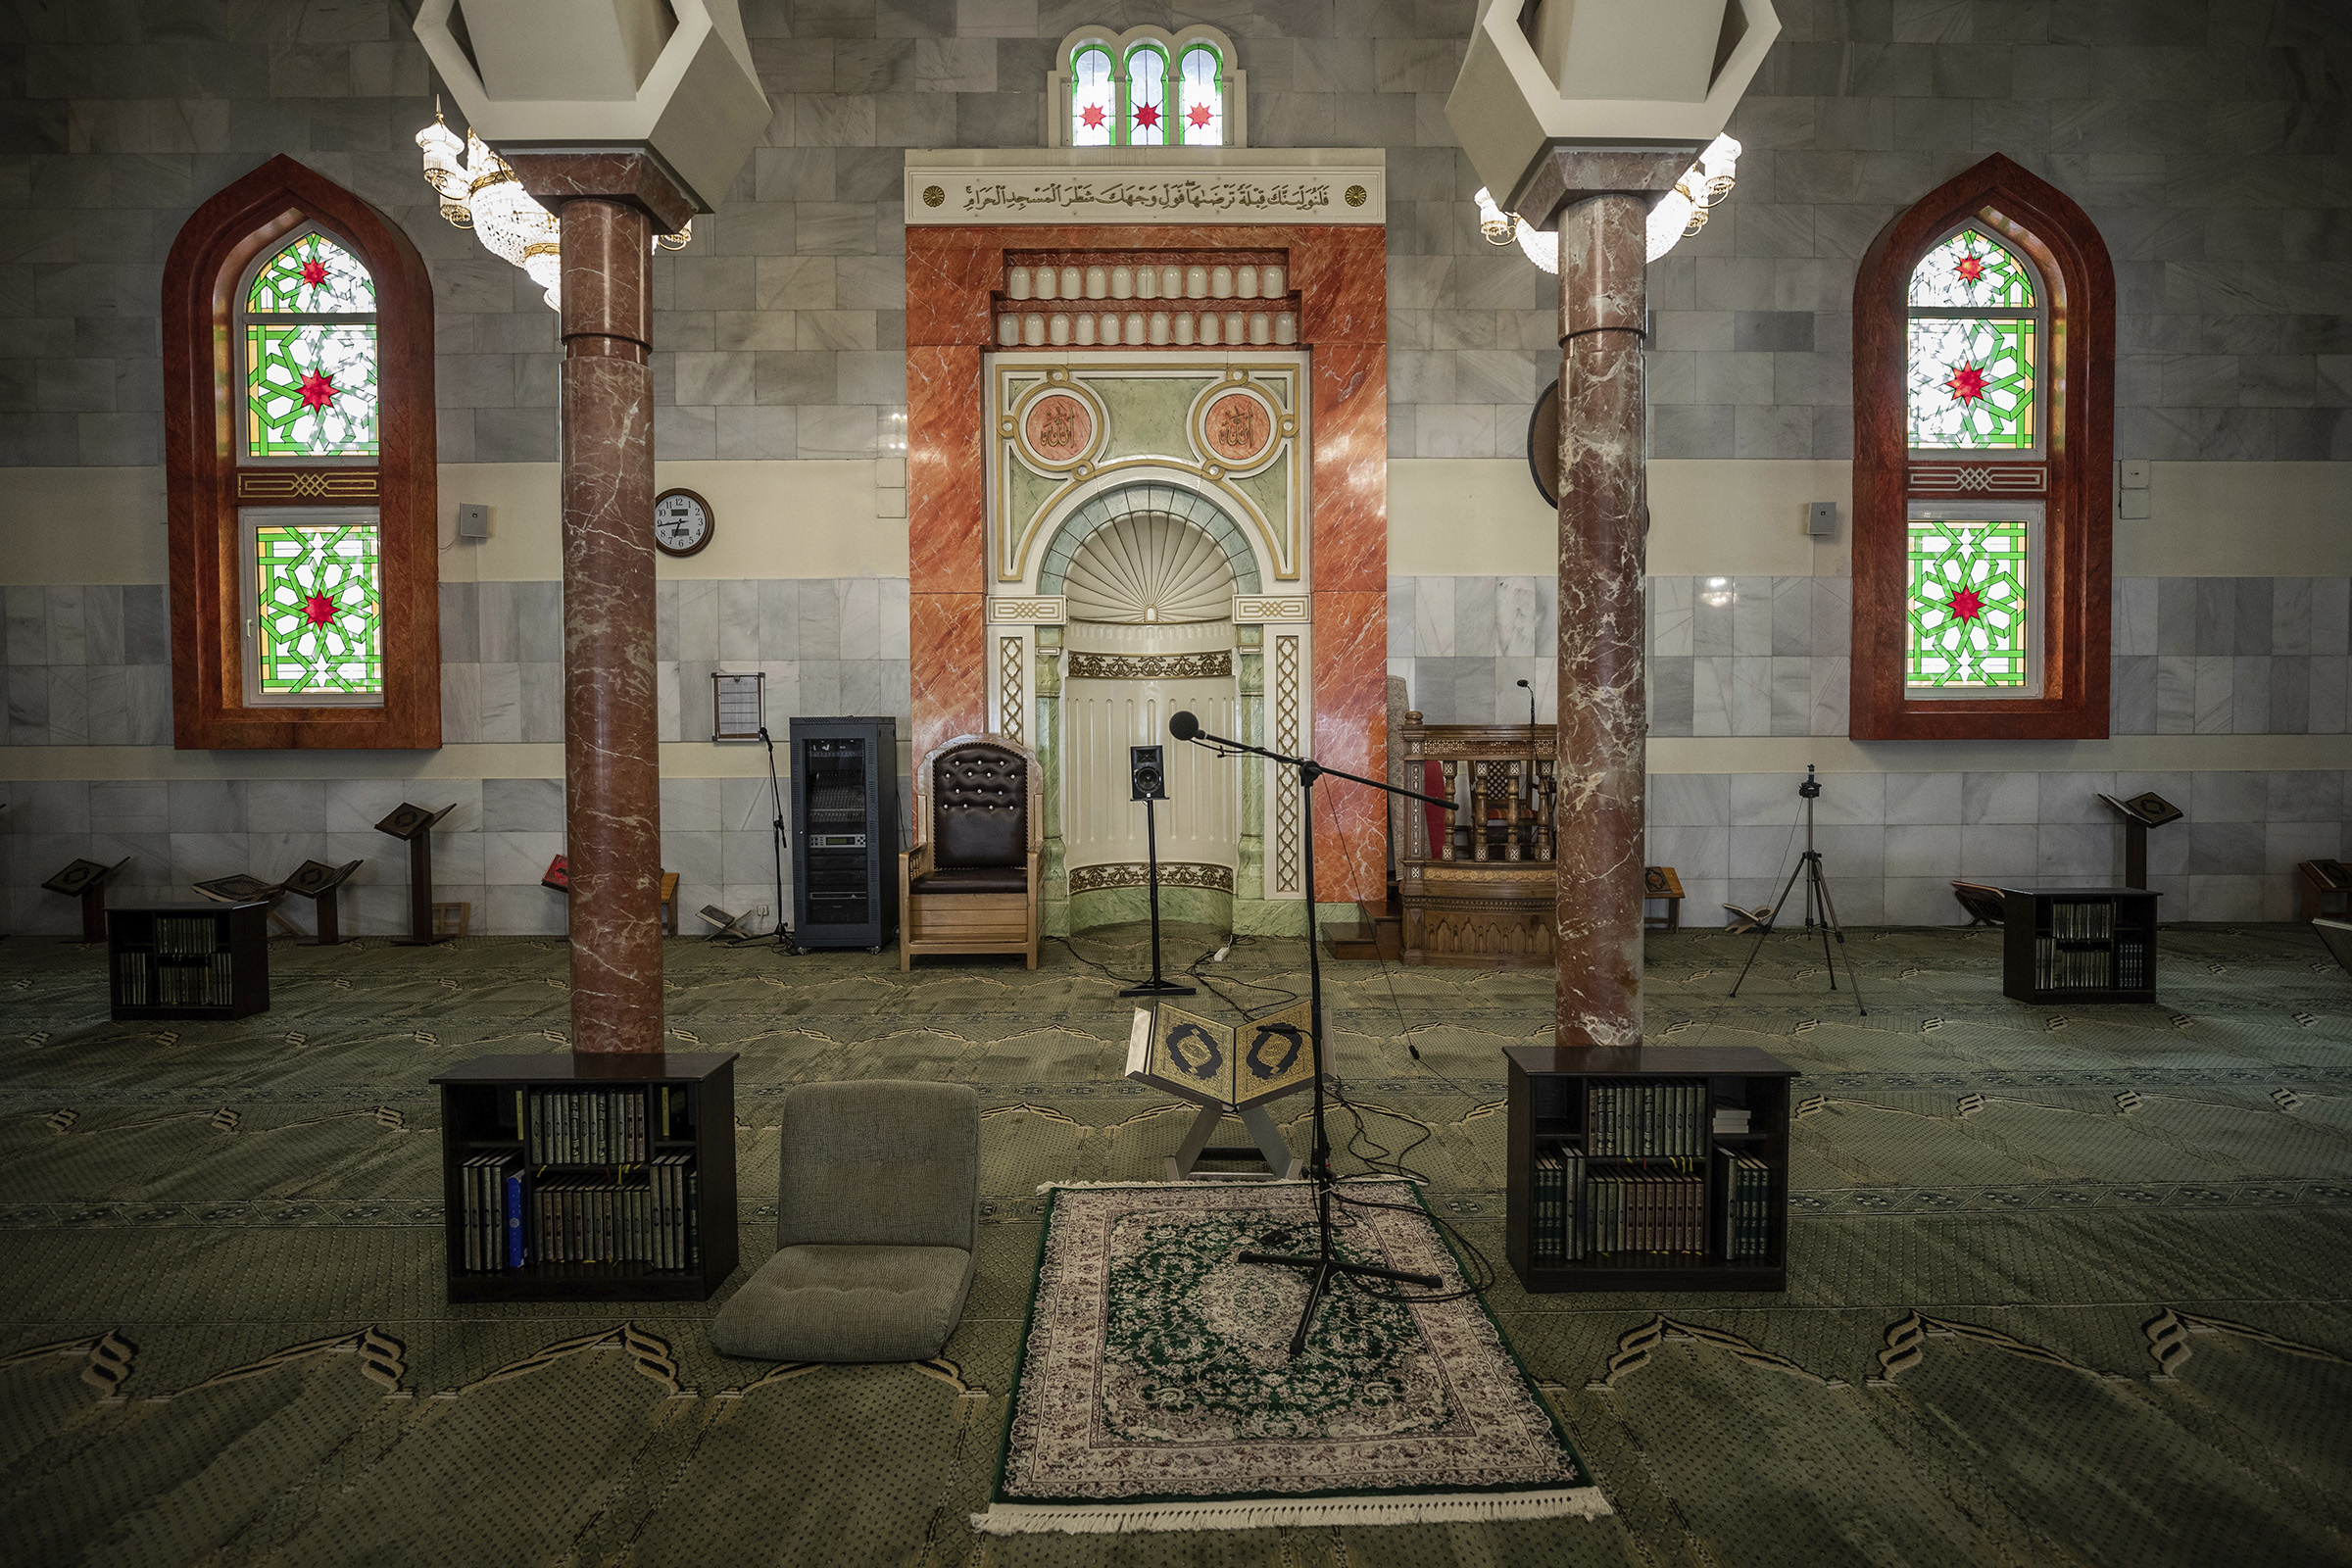 View of the prayer area of the Islamic Cultural Center and Mosque, empty due to social distancing guidelines in Madrid, Spain, on April 23, 2020.